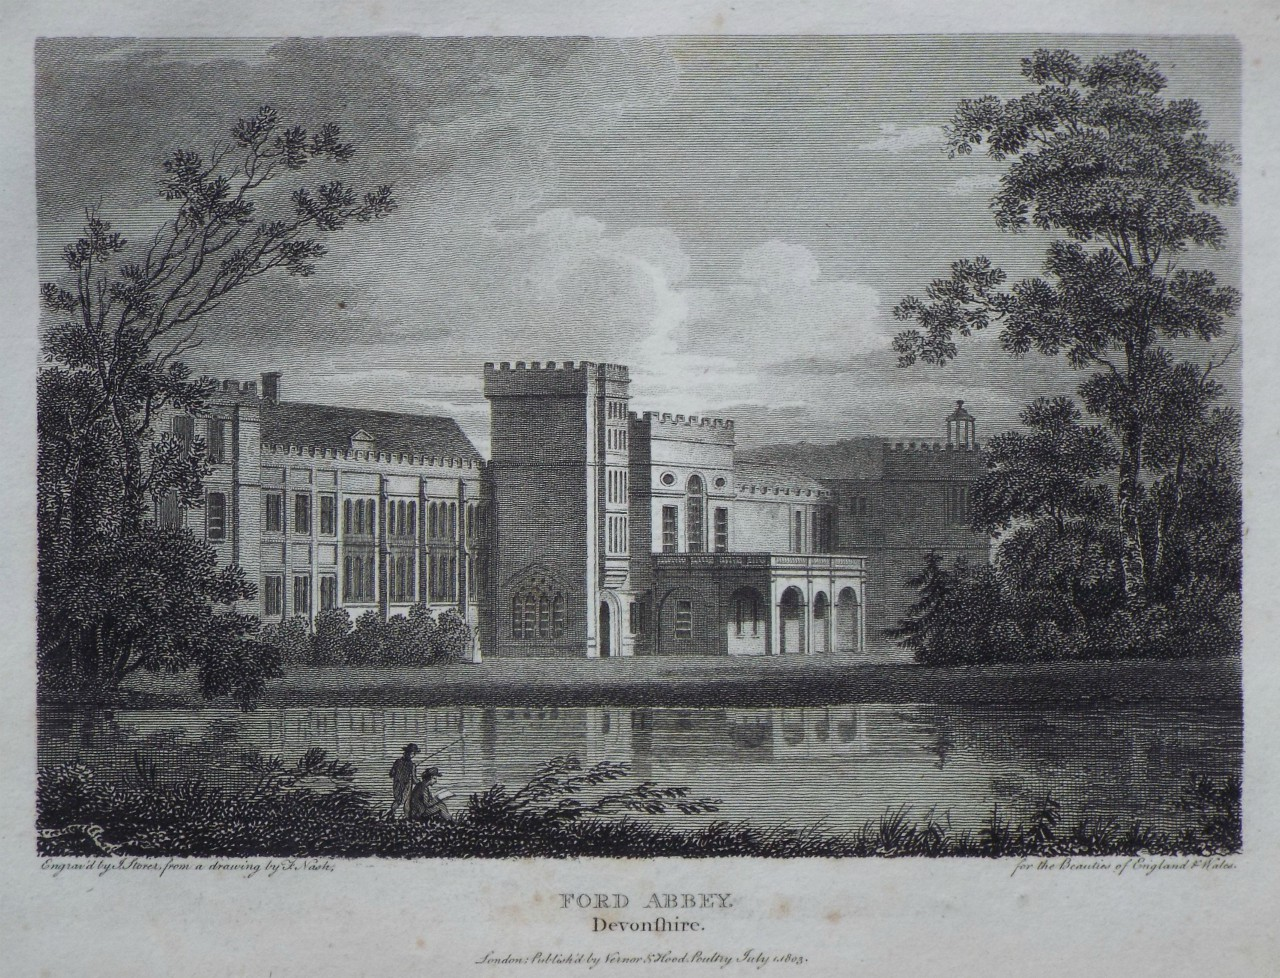 Print - Ford Abbey, Devonshire. - Storer